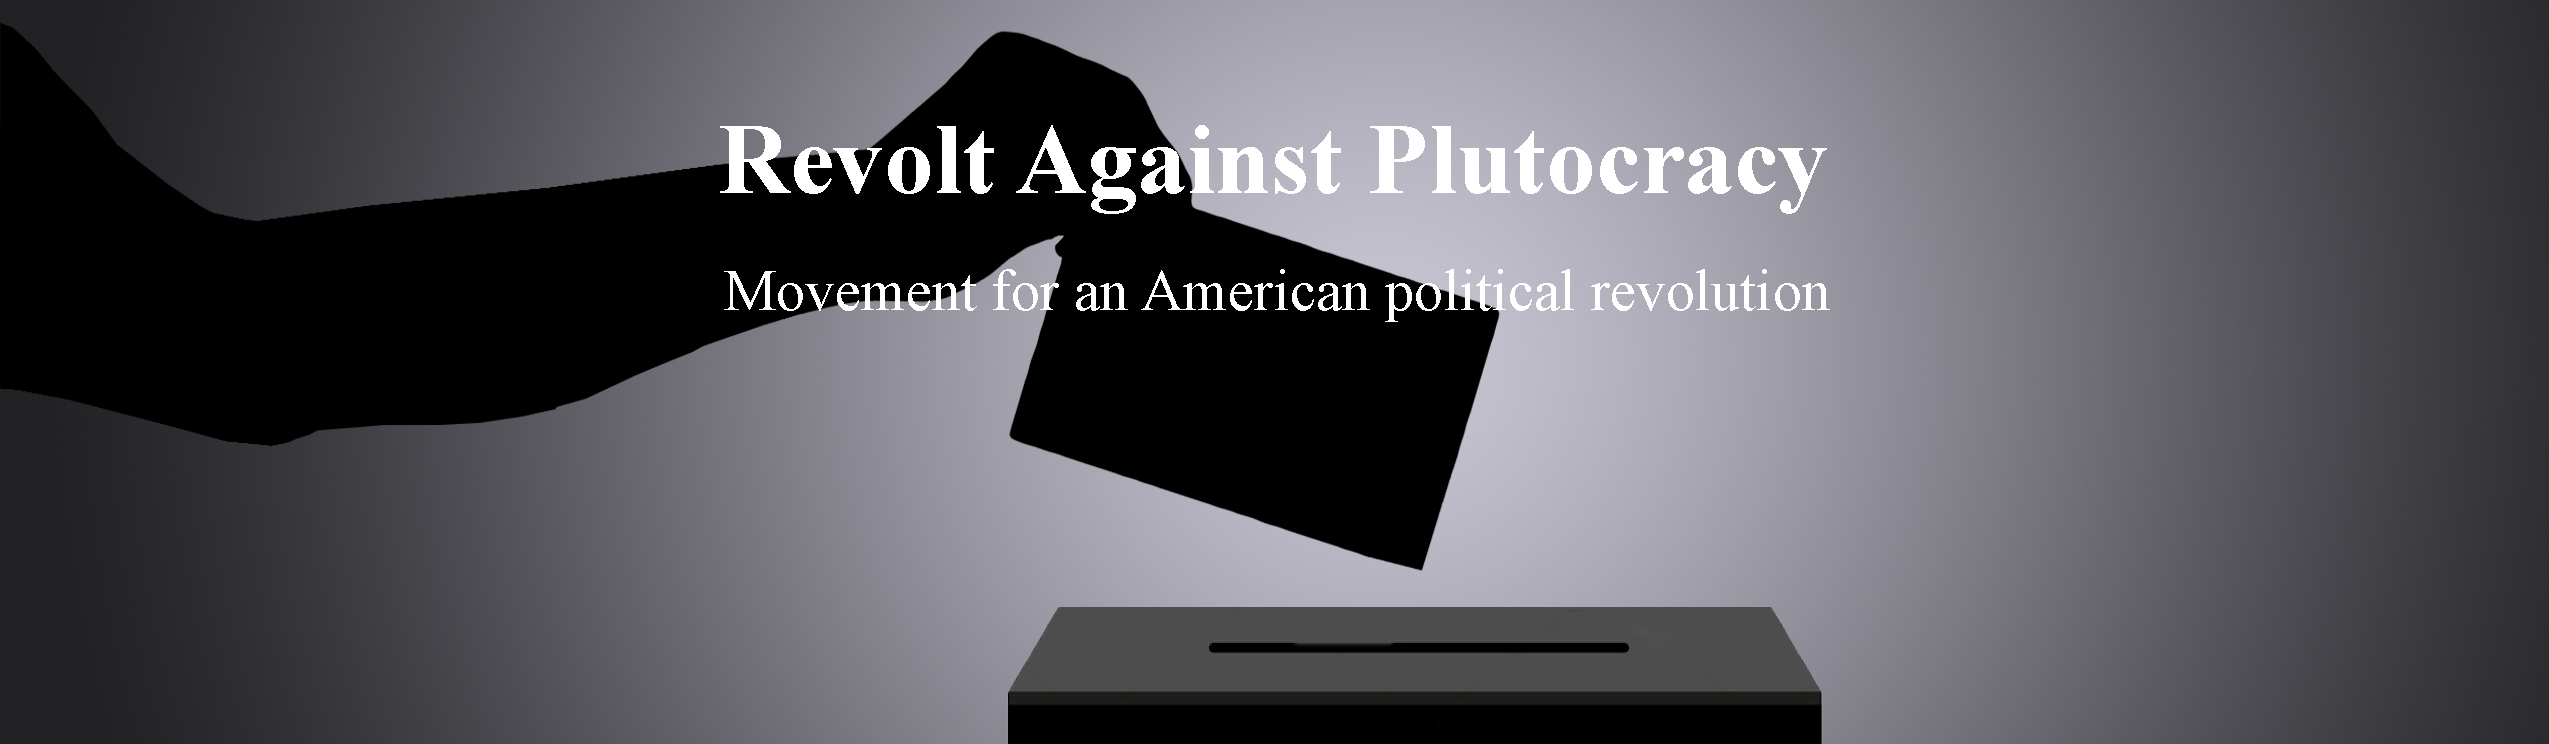 Citizens Against Plutocracy